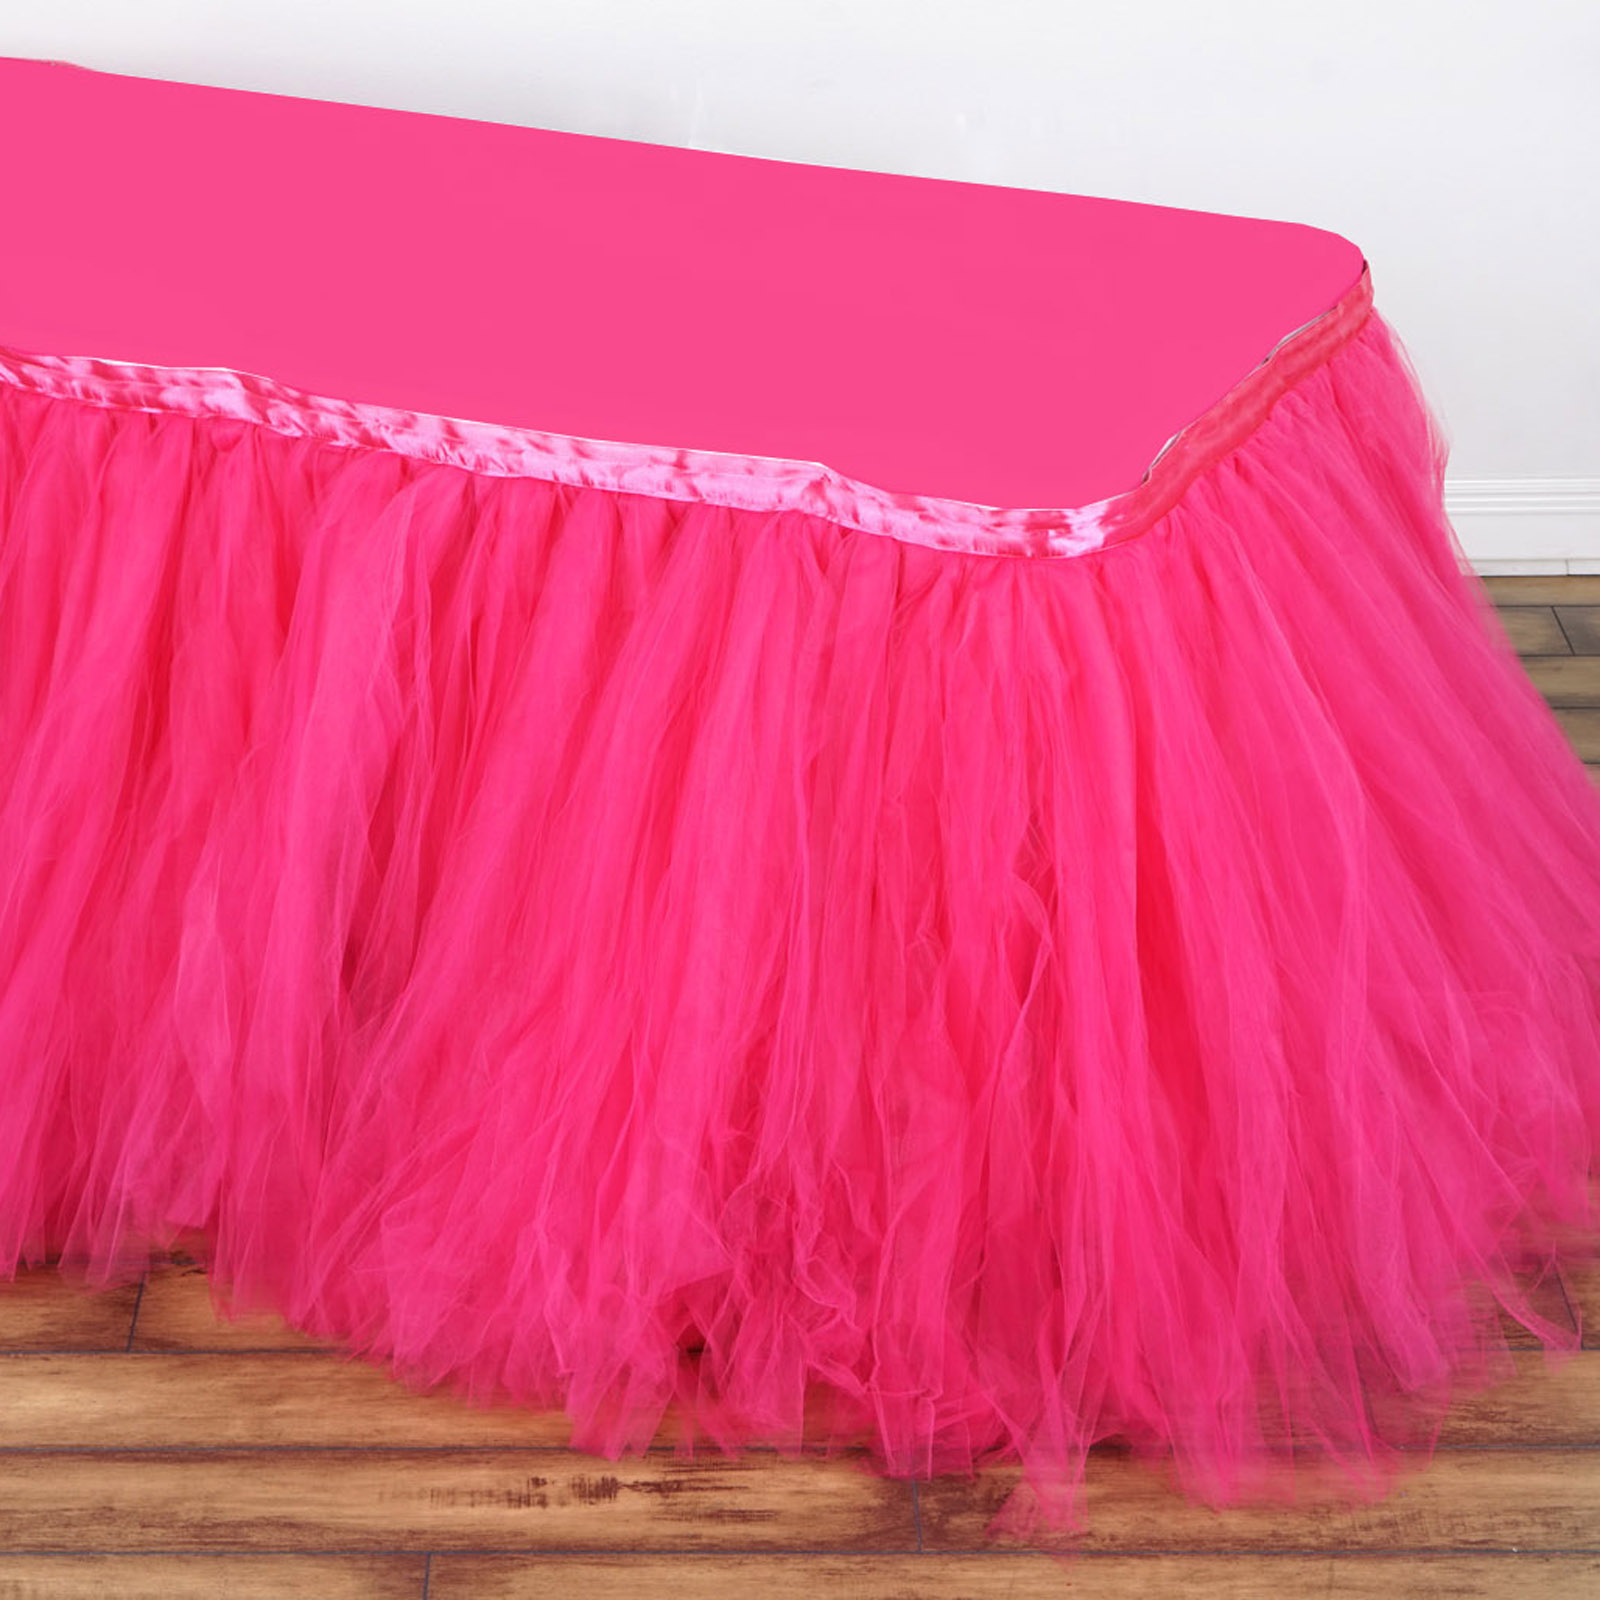 BalsaCircle Tutu Multi Layers Tulle Table Skirt - 3 sizes - Wedding Party Trade Show Booth Events Linens Decorations